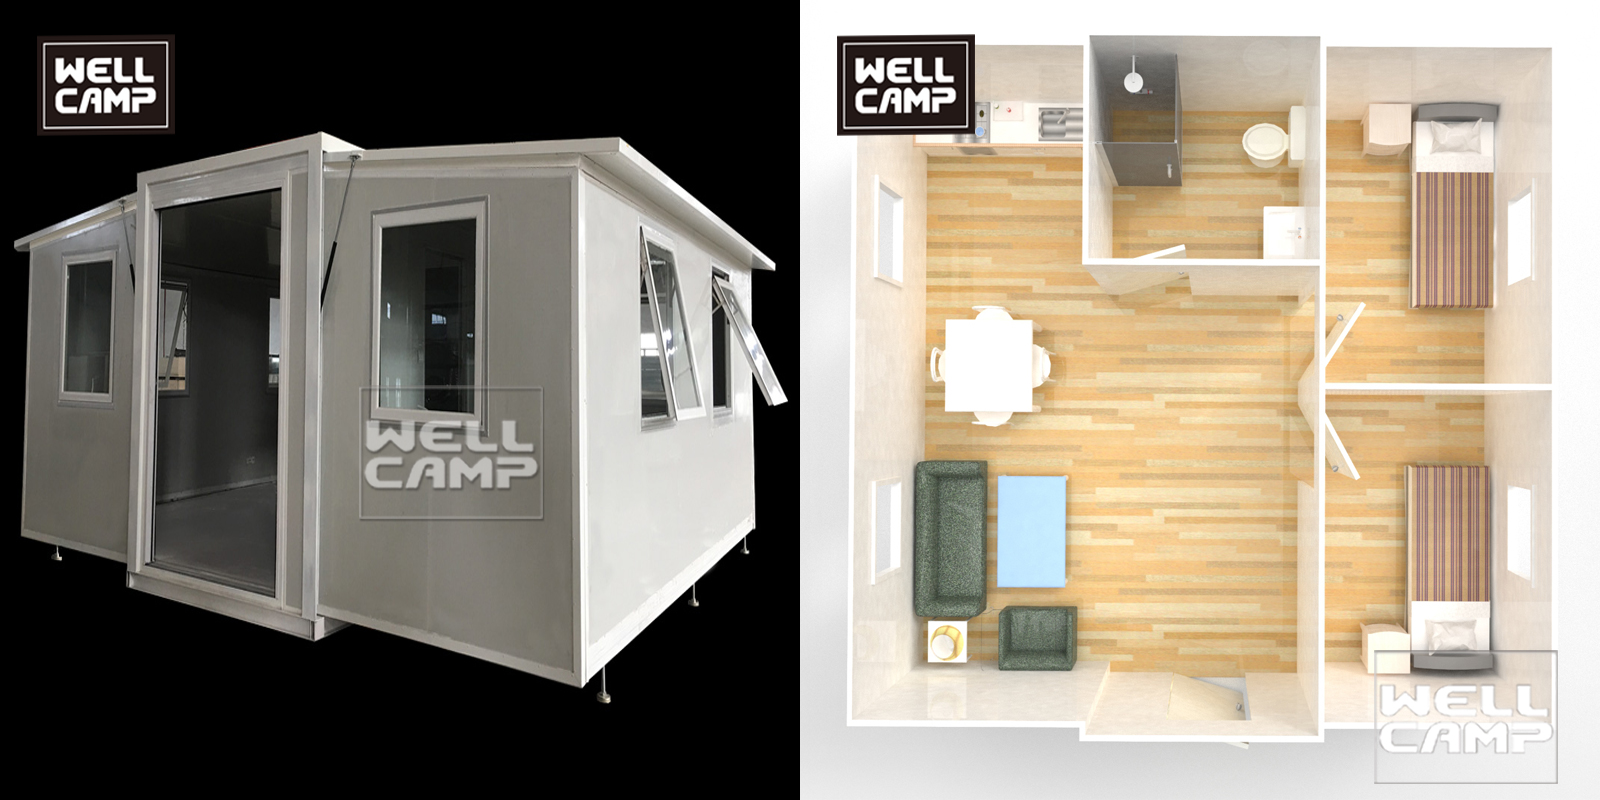 WELLCAMP-Why Container Houses Matter At Earthquake-2